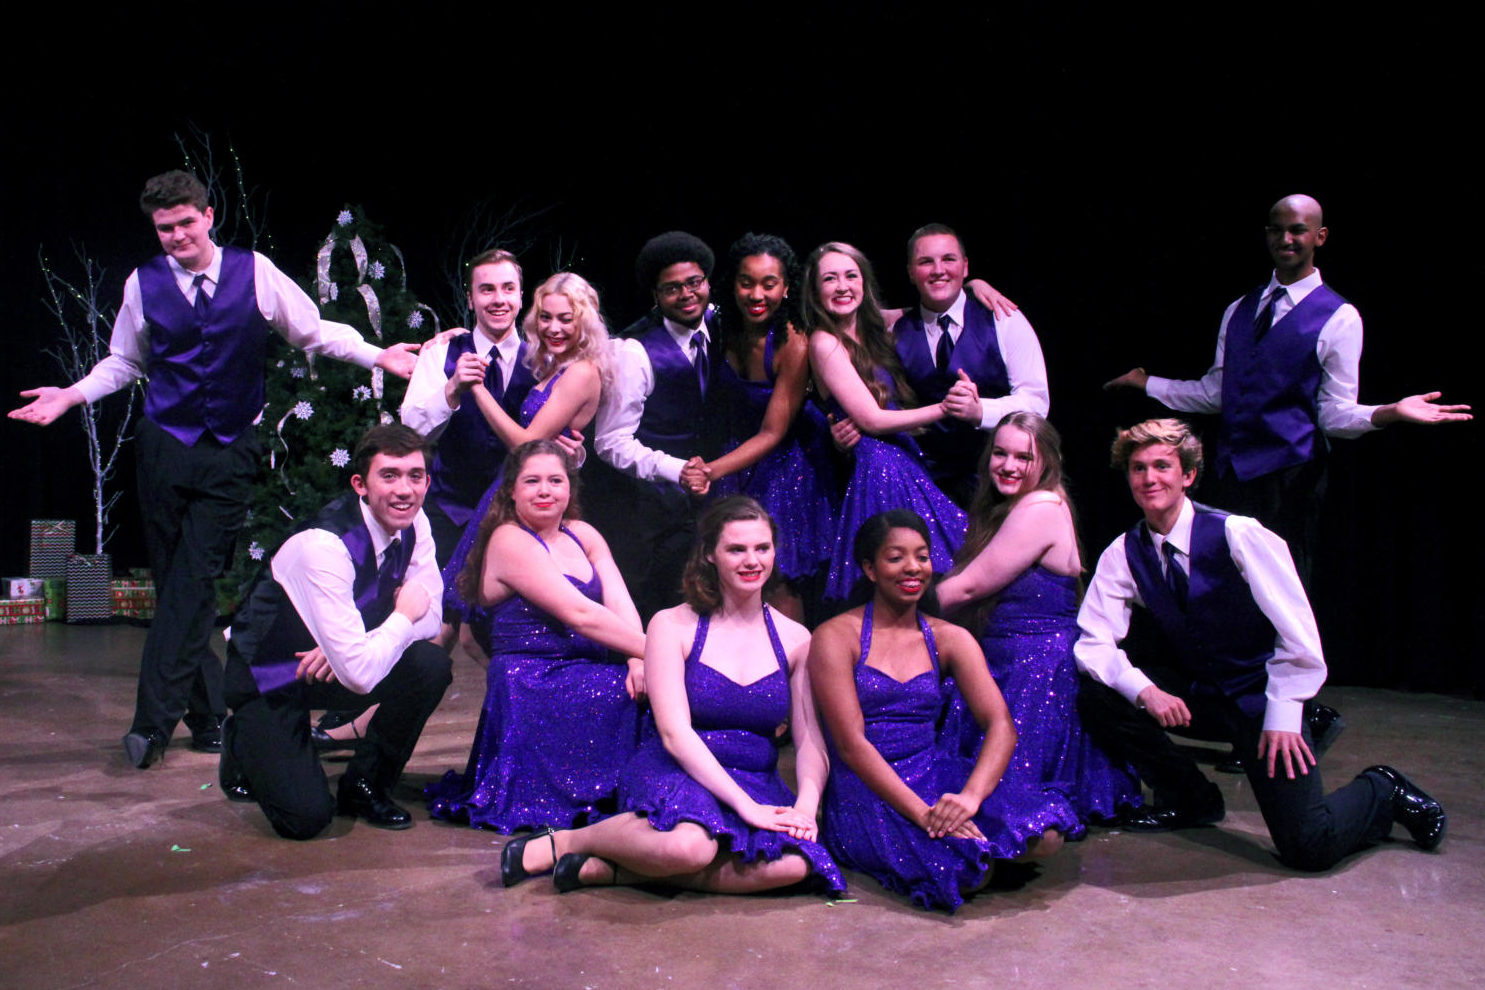 Show Choir poses together after the final song of their performance on Dec. 7. The group sang and danced to a variety of holiday songs.